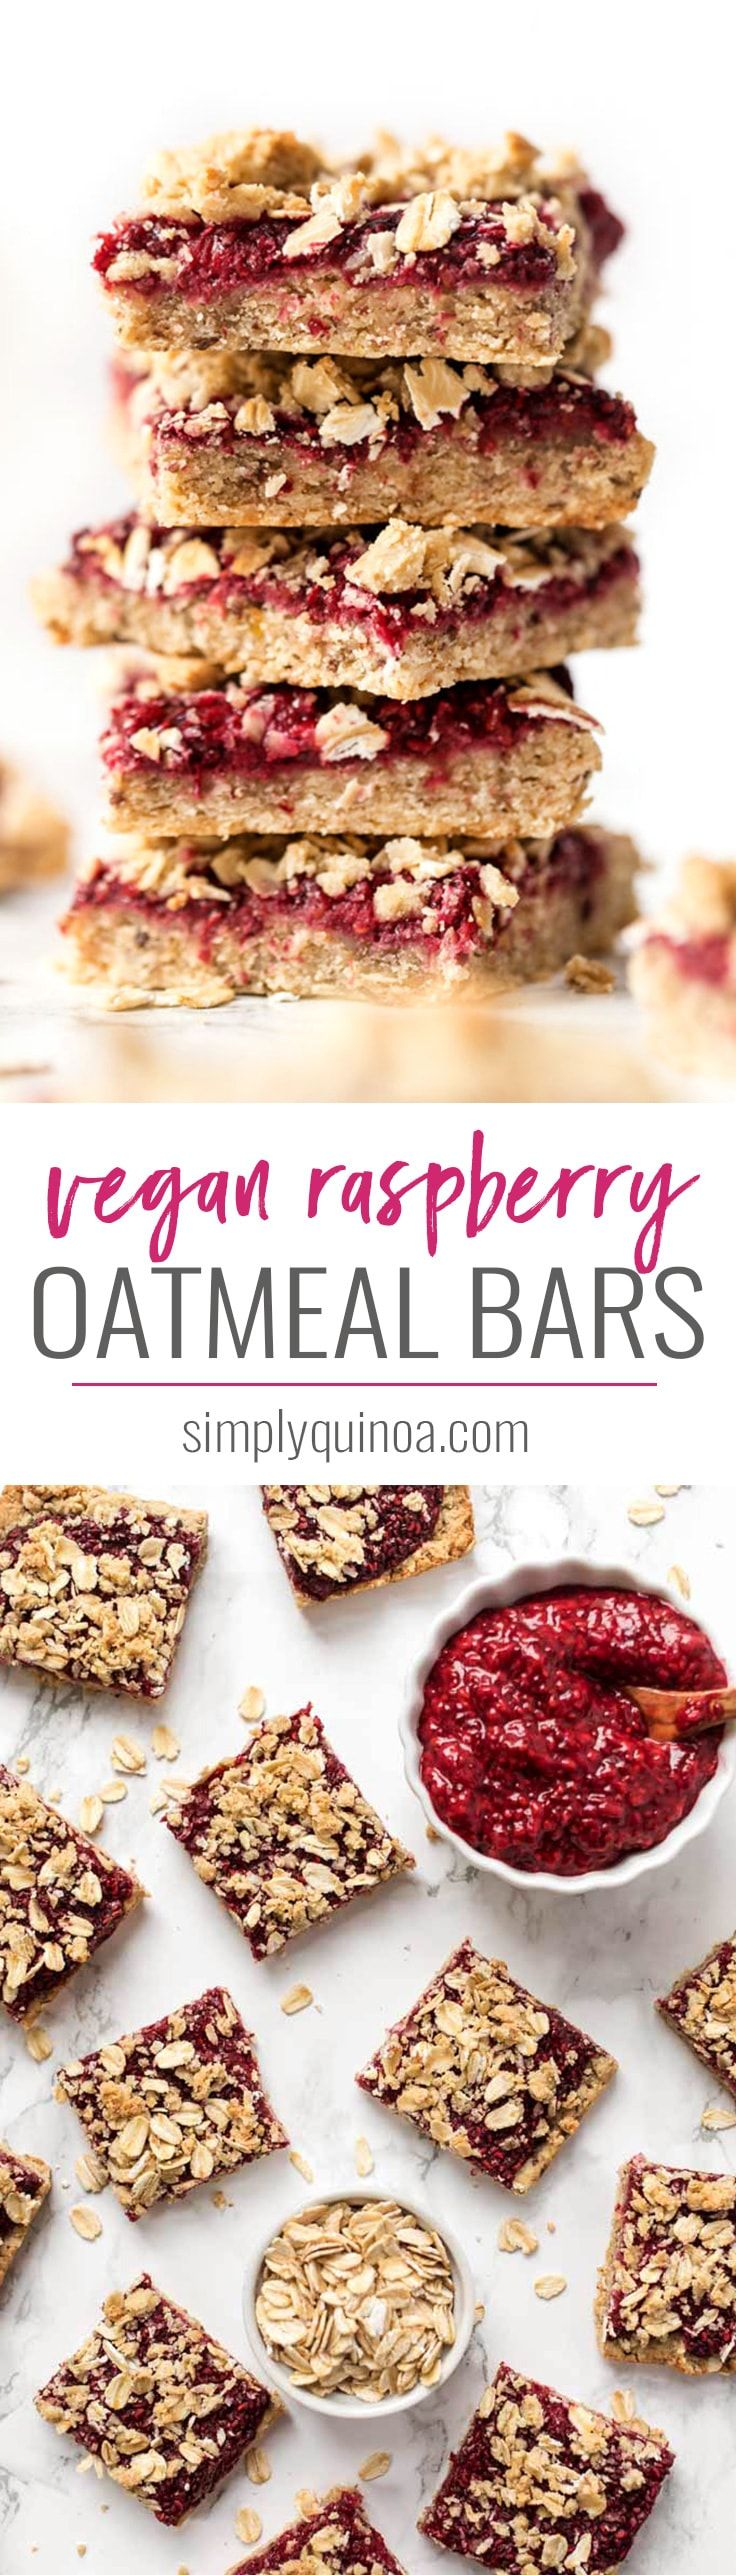 These are the perfect VEGAN Raspberry Oatmeal Bars and they're made with just 9 simple ingredients and use only one bowl! Also healthy, gluten-free & naturally sweetened! Simply Quinoa #oatmealbars #veganbreakfast #simplyquinoa